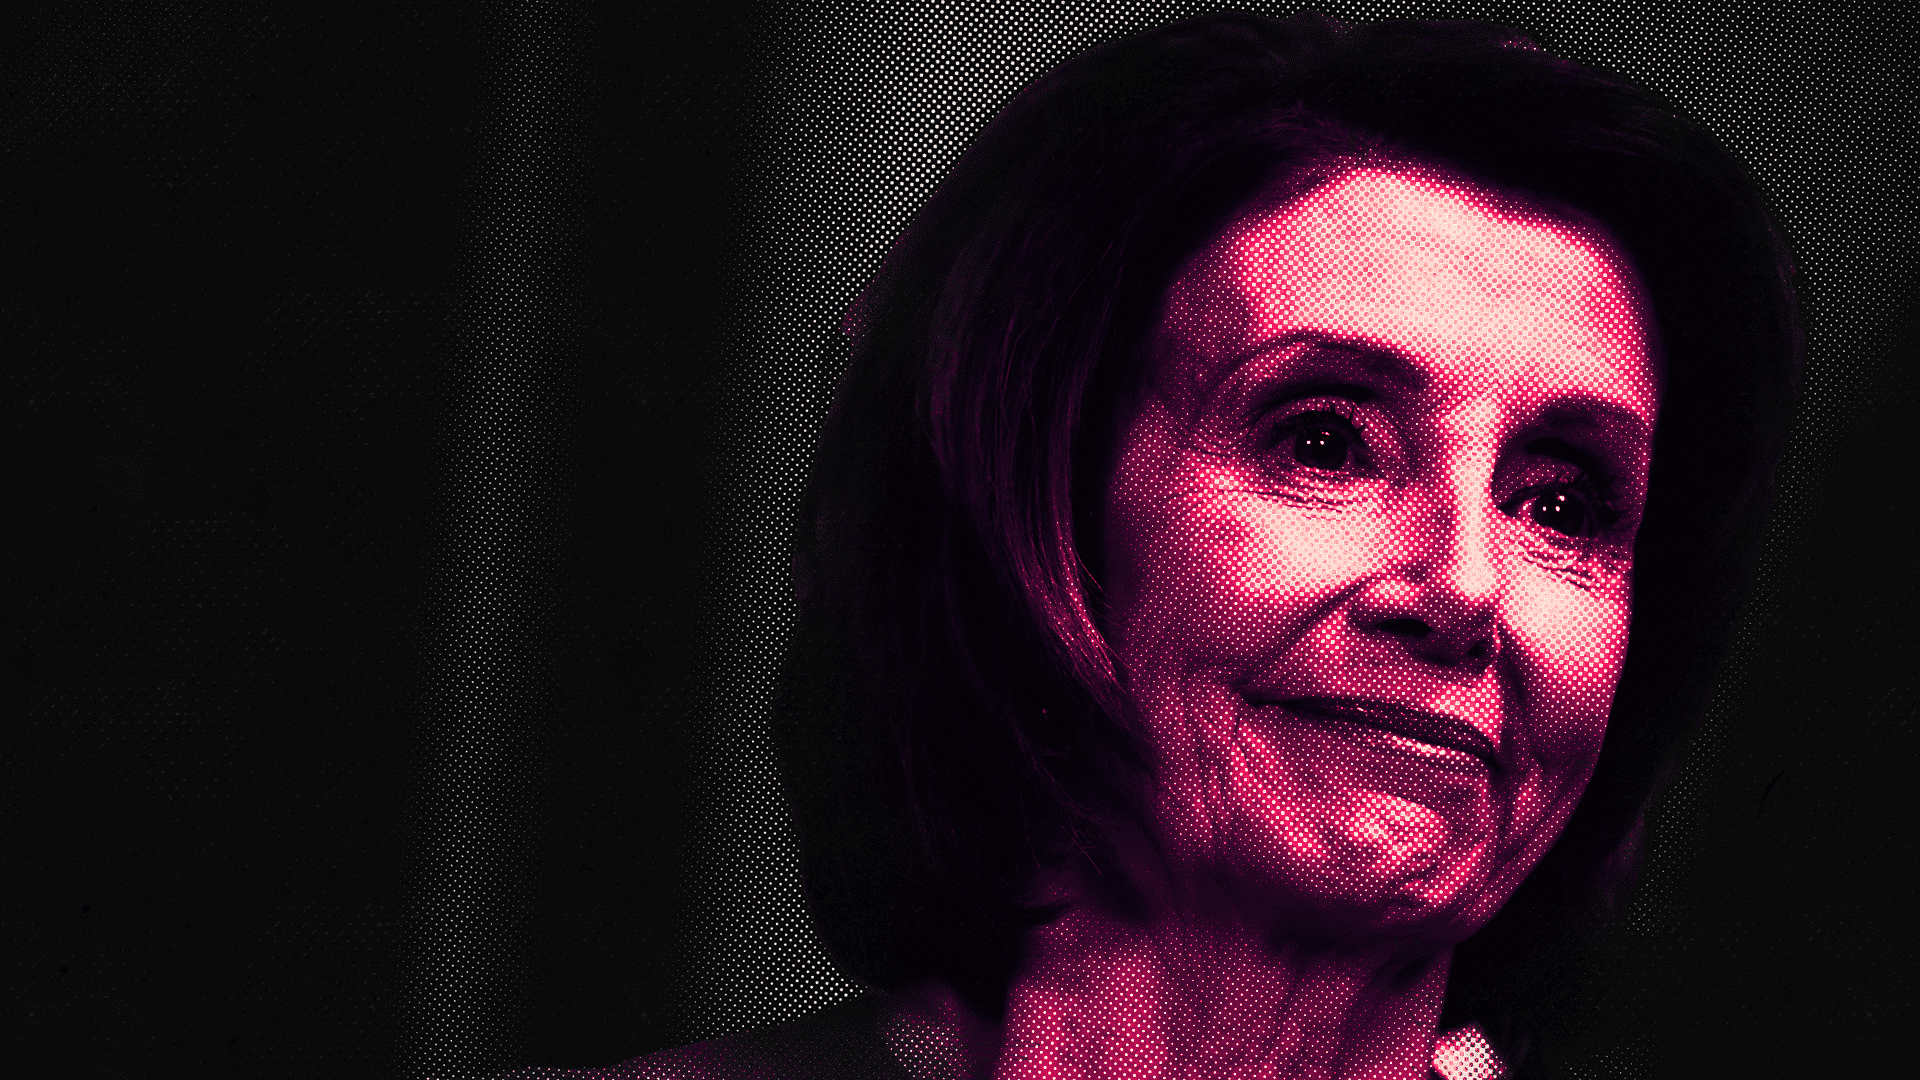 Nancy Pelosi.